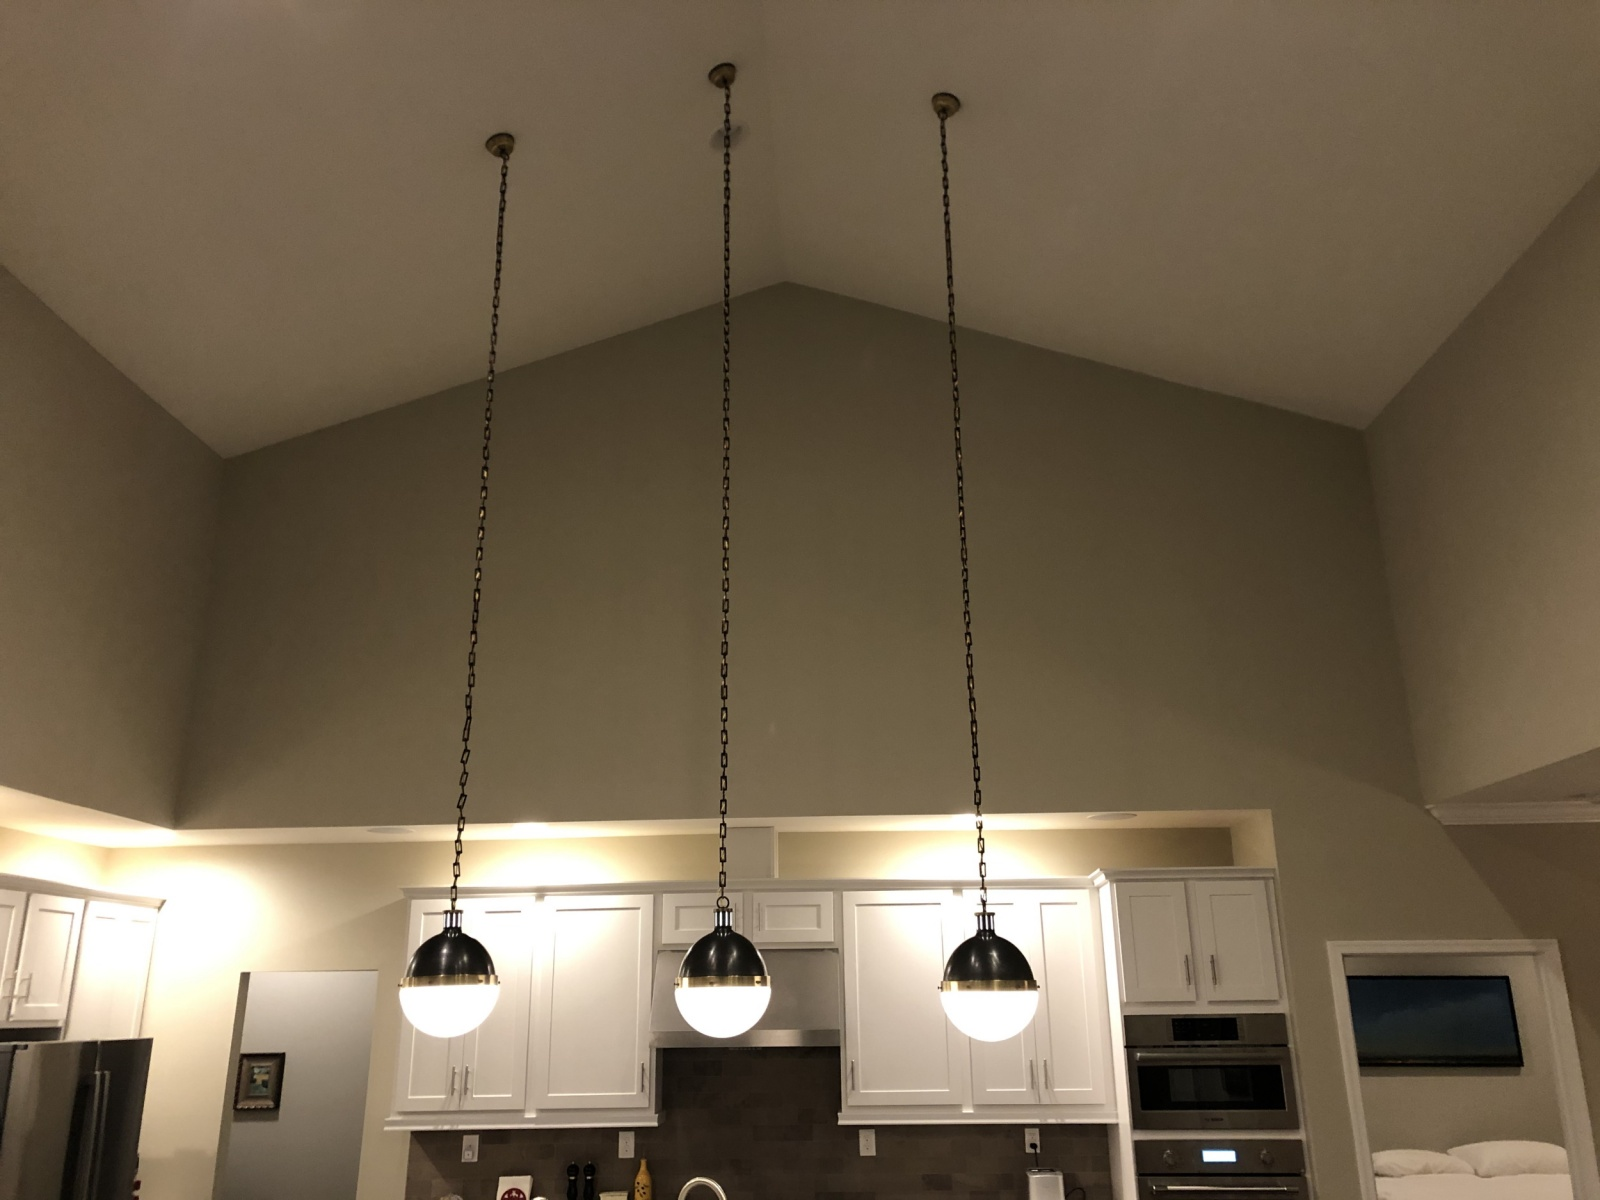 New-light-fixture-install